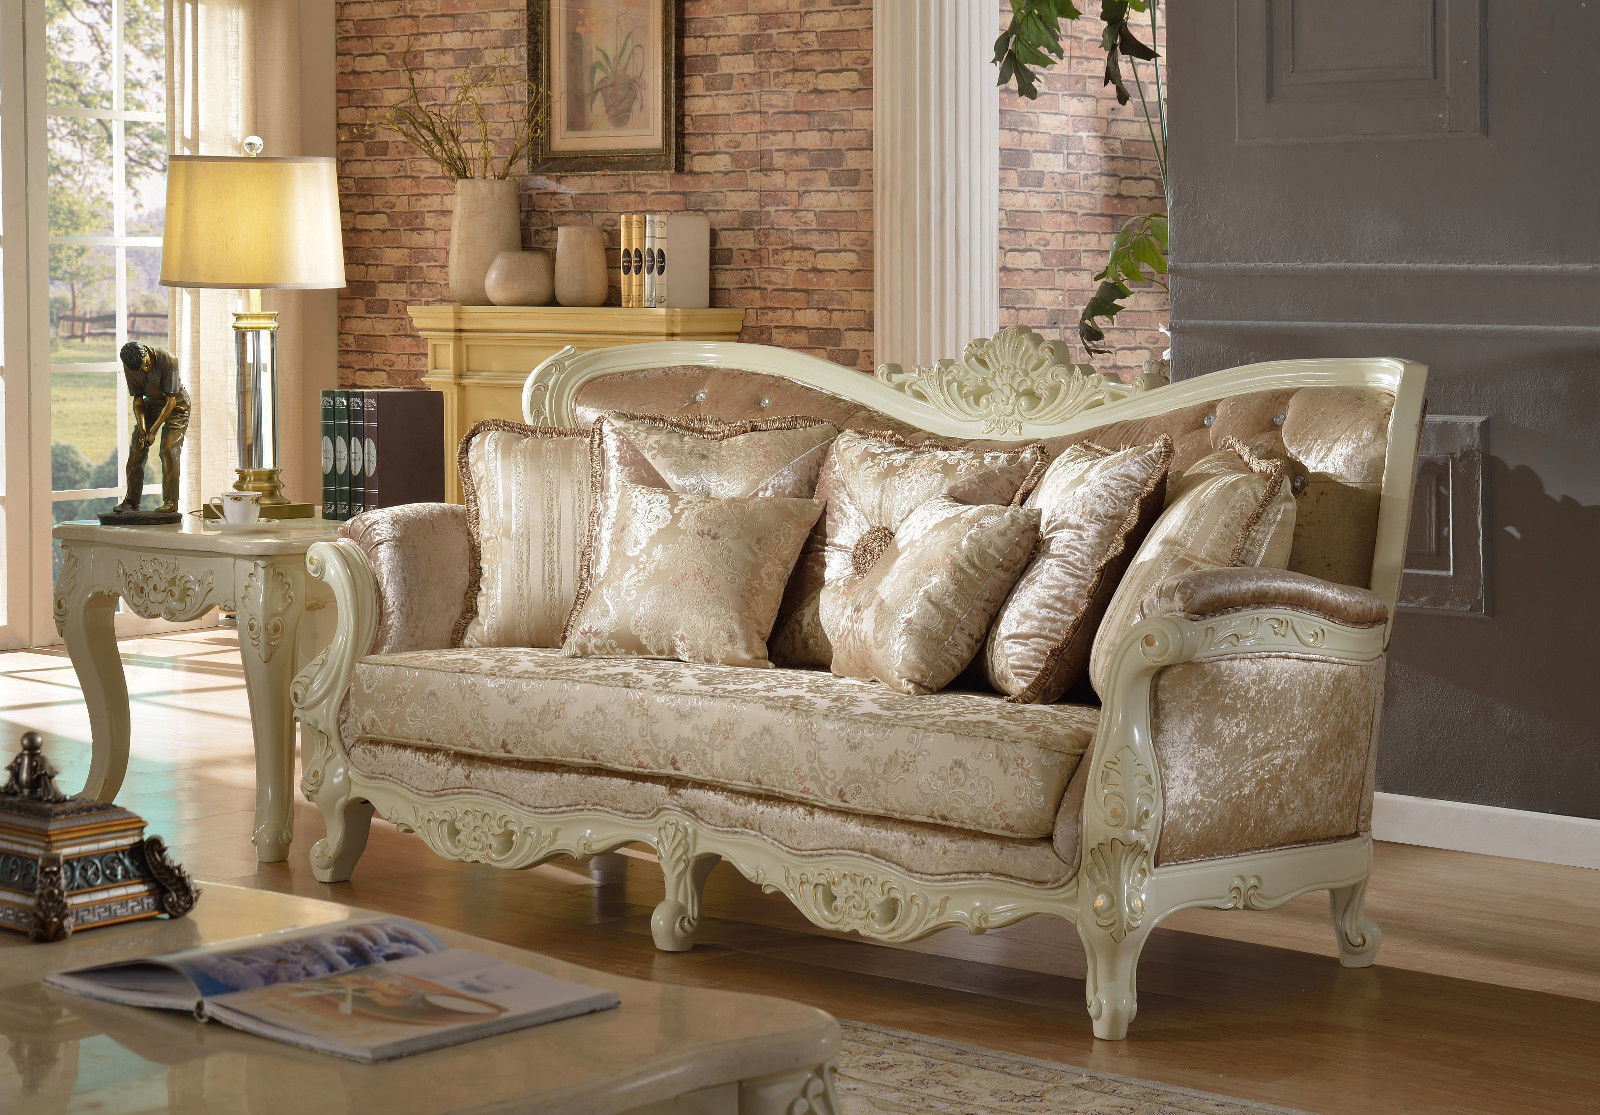 Meridian 687 Living Room Sofa Set 3pc. Tufted Pearl White Chic Traditional Style